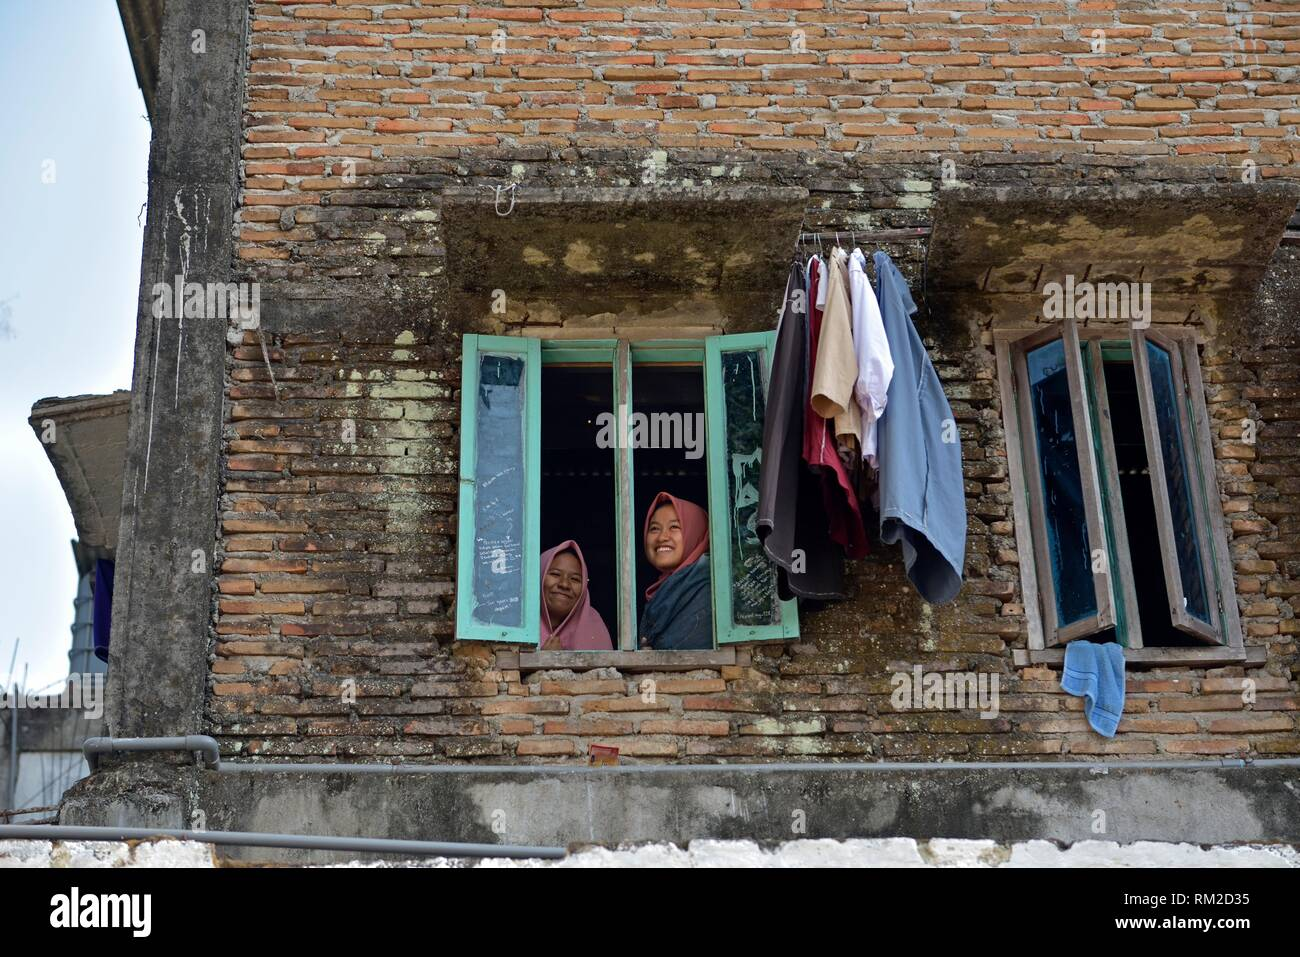 school girls at the window of a high school dormitory, Lasem, Java island, Indonesia, Southeast Asia. - Stock Image